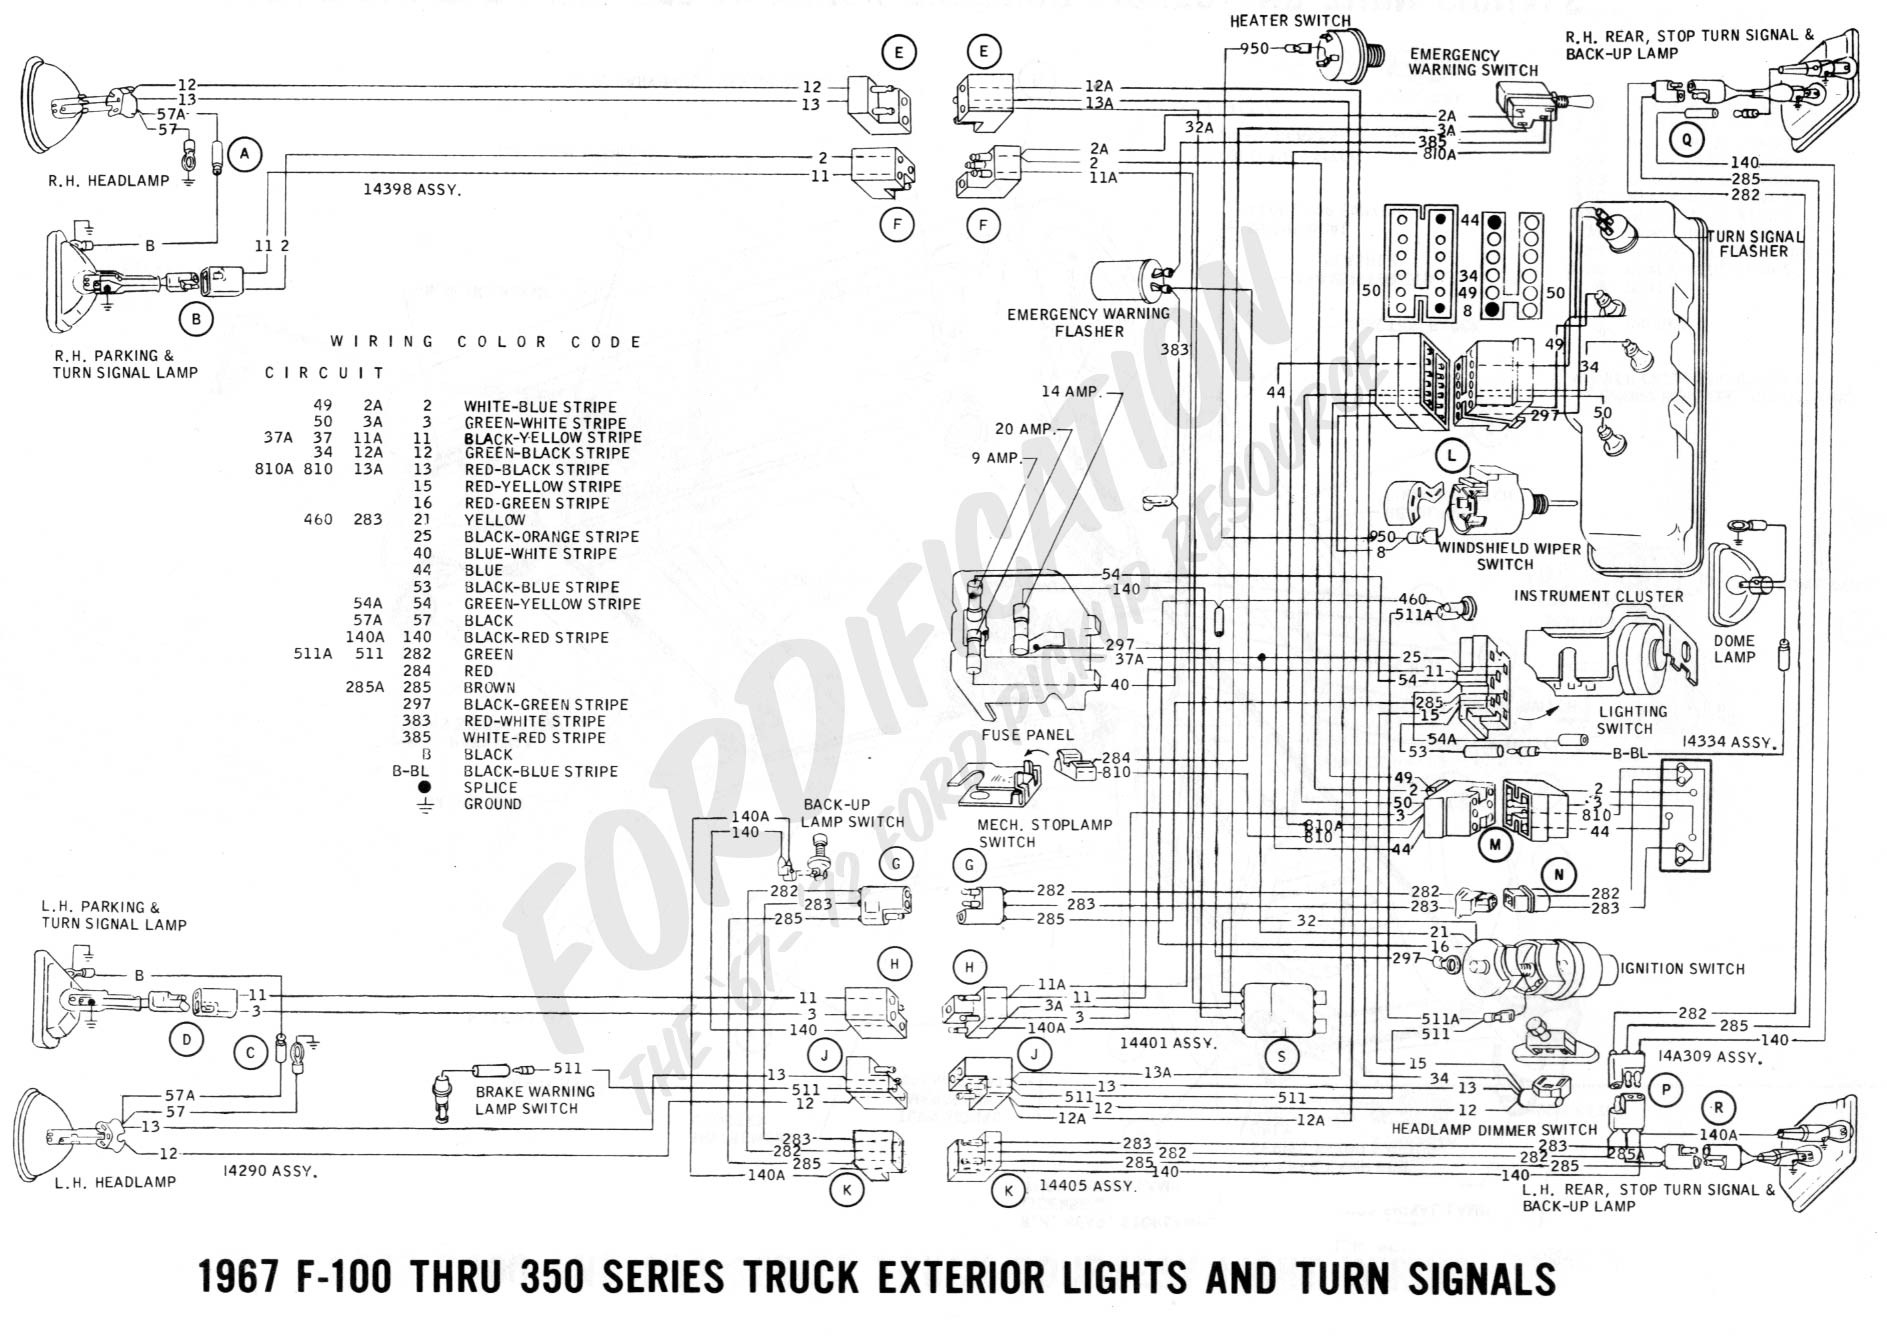 Tail Light Wiring Diagram ford F150 ford Truck Technical Drawings and Schematics Section H Wiring Of Tail Light Wiring Diagram ford F150